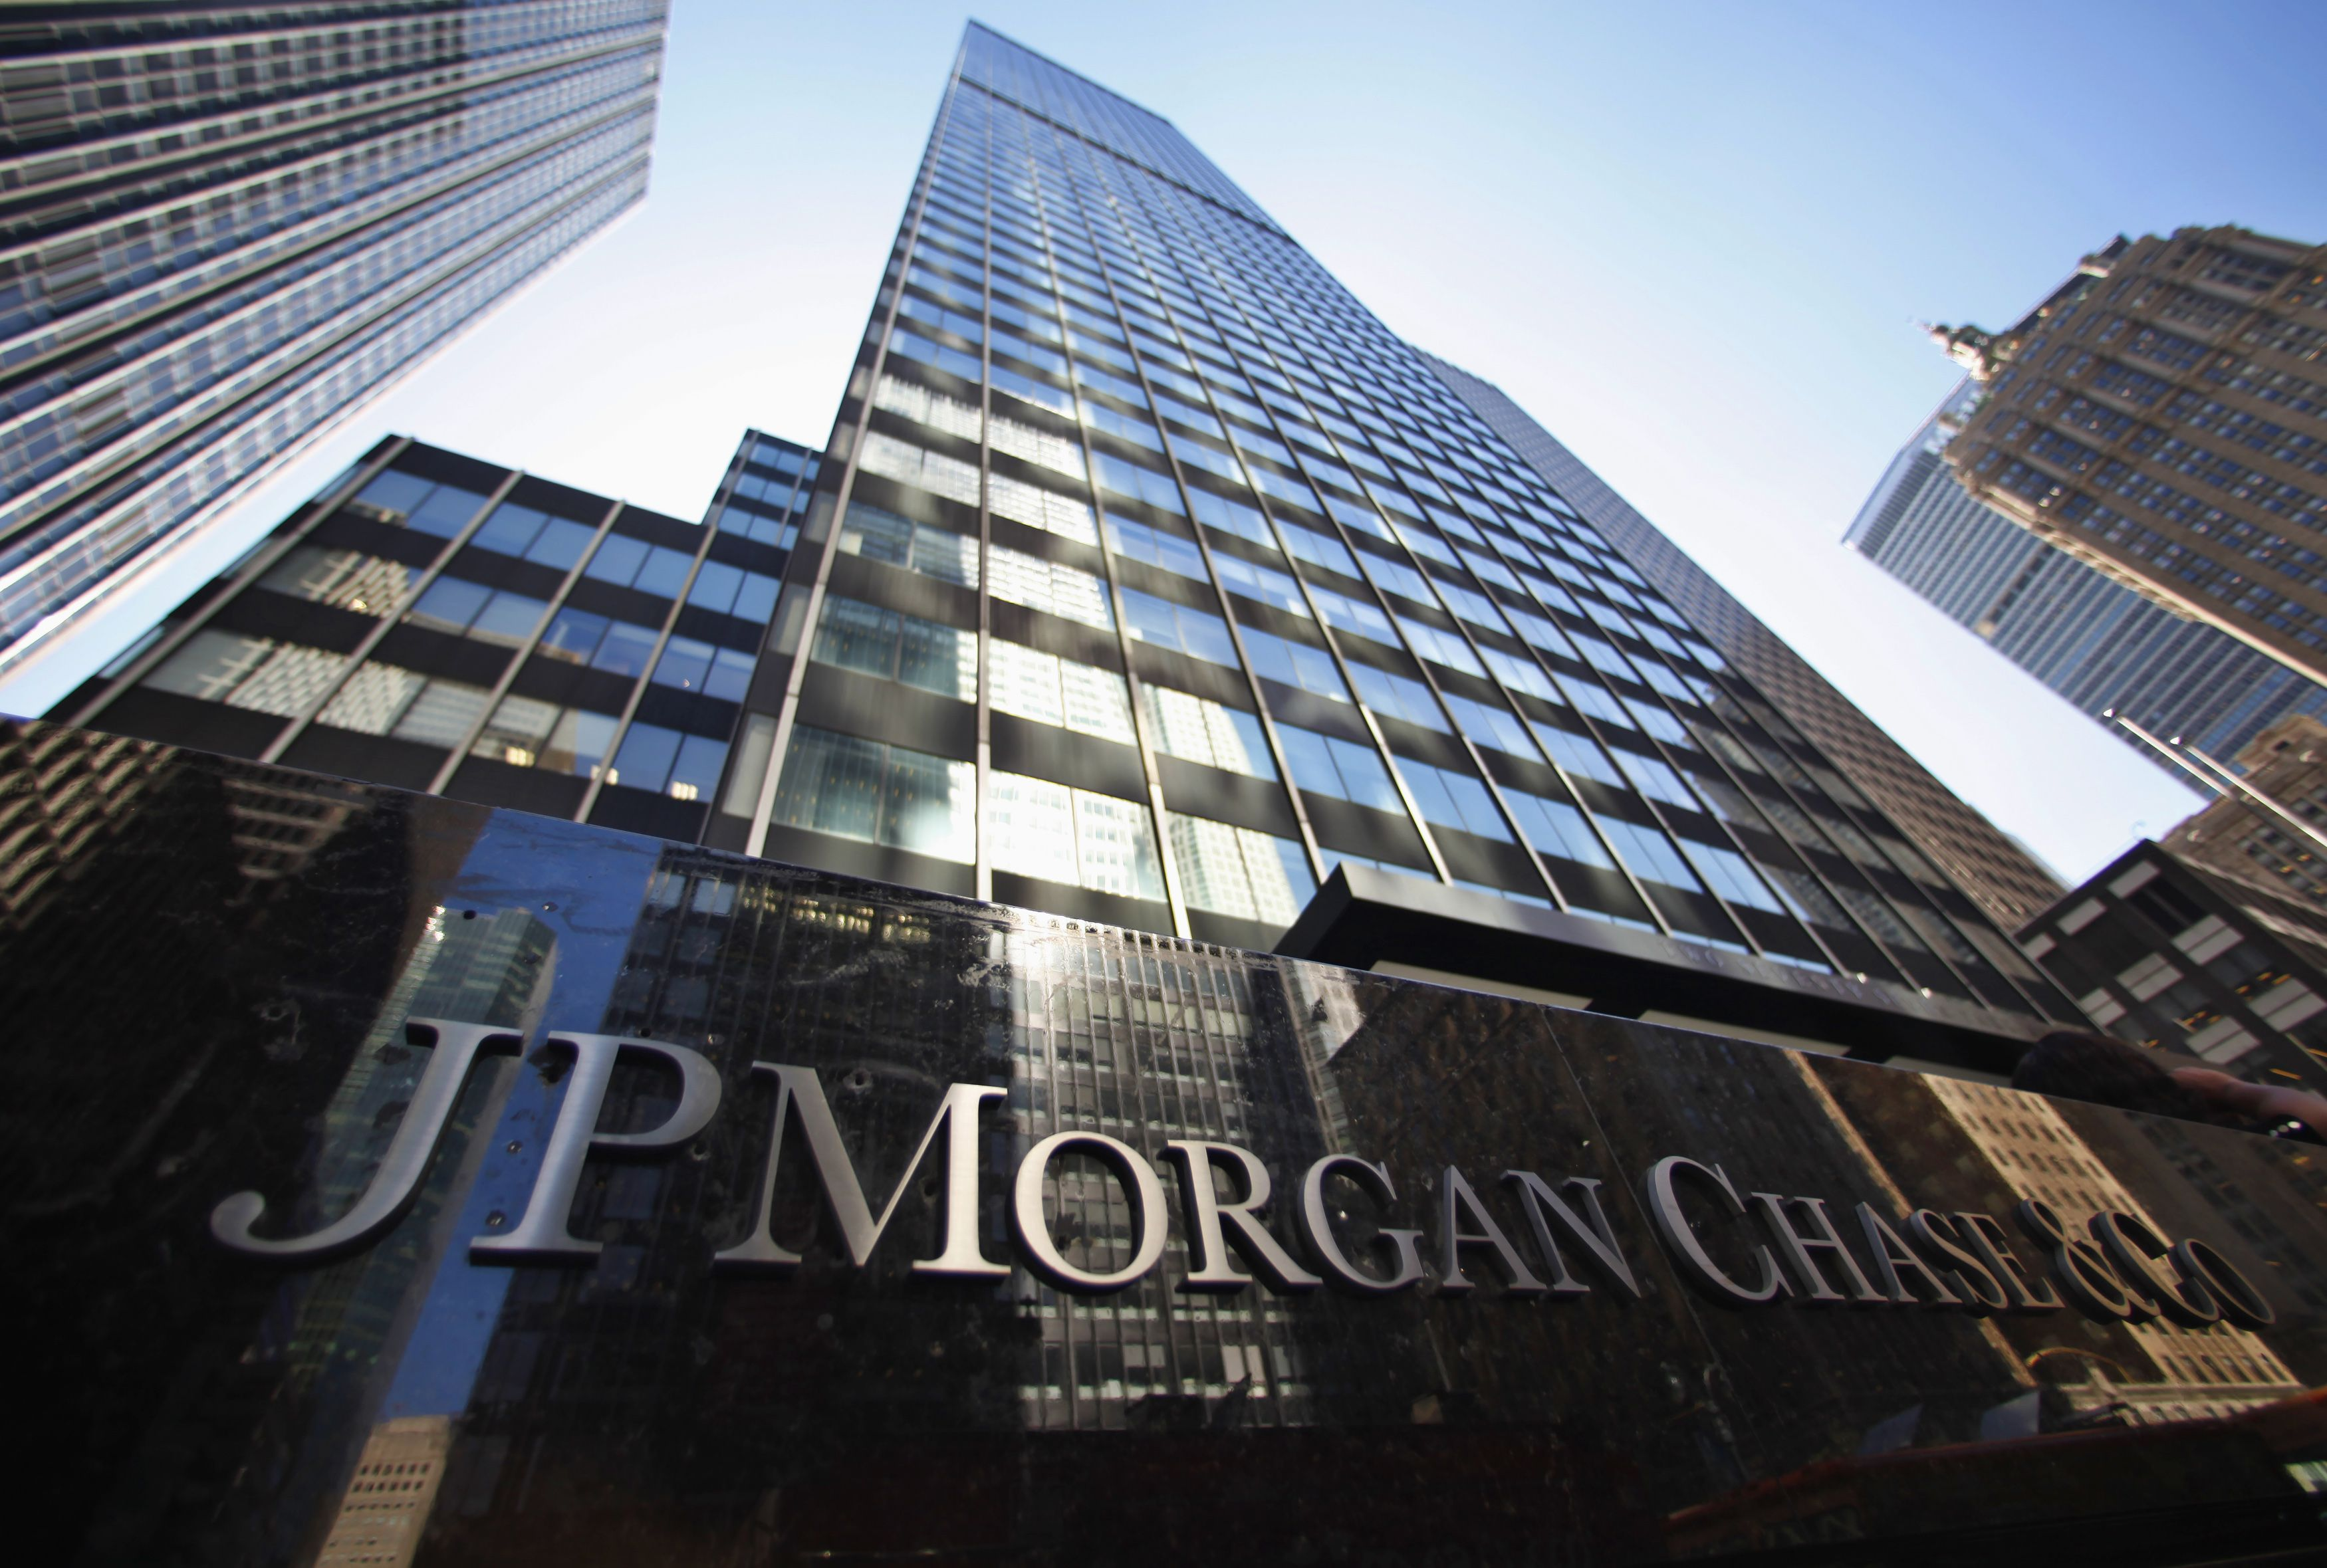 JPMorgan Chase has reportedly reached an agreement with regulators to pay $100 million to settle charges over a trading scandal.